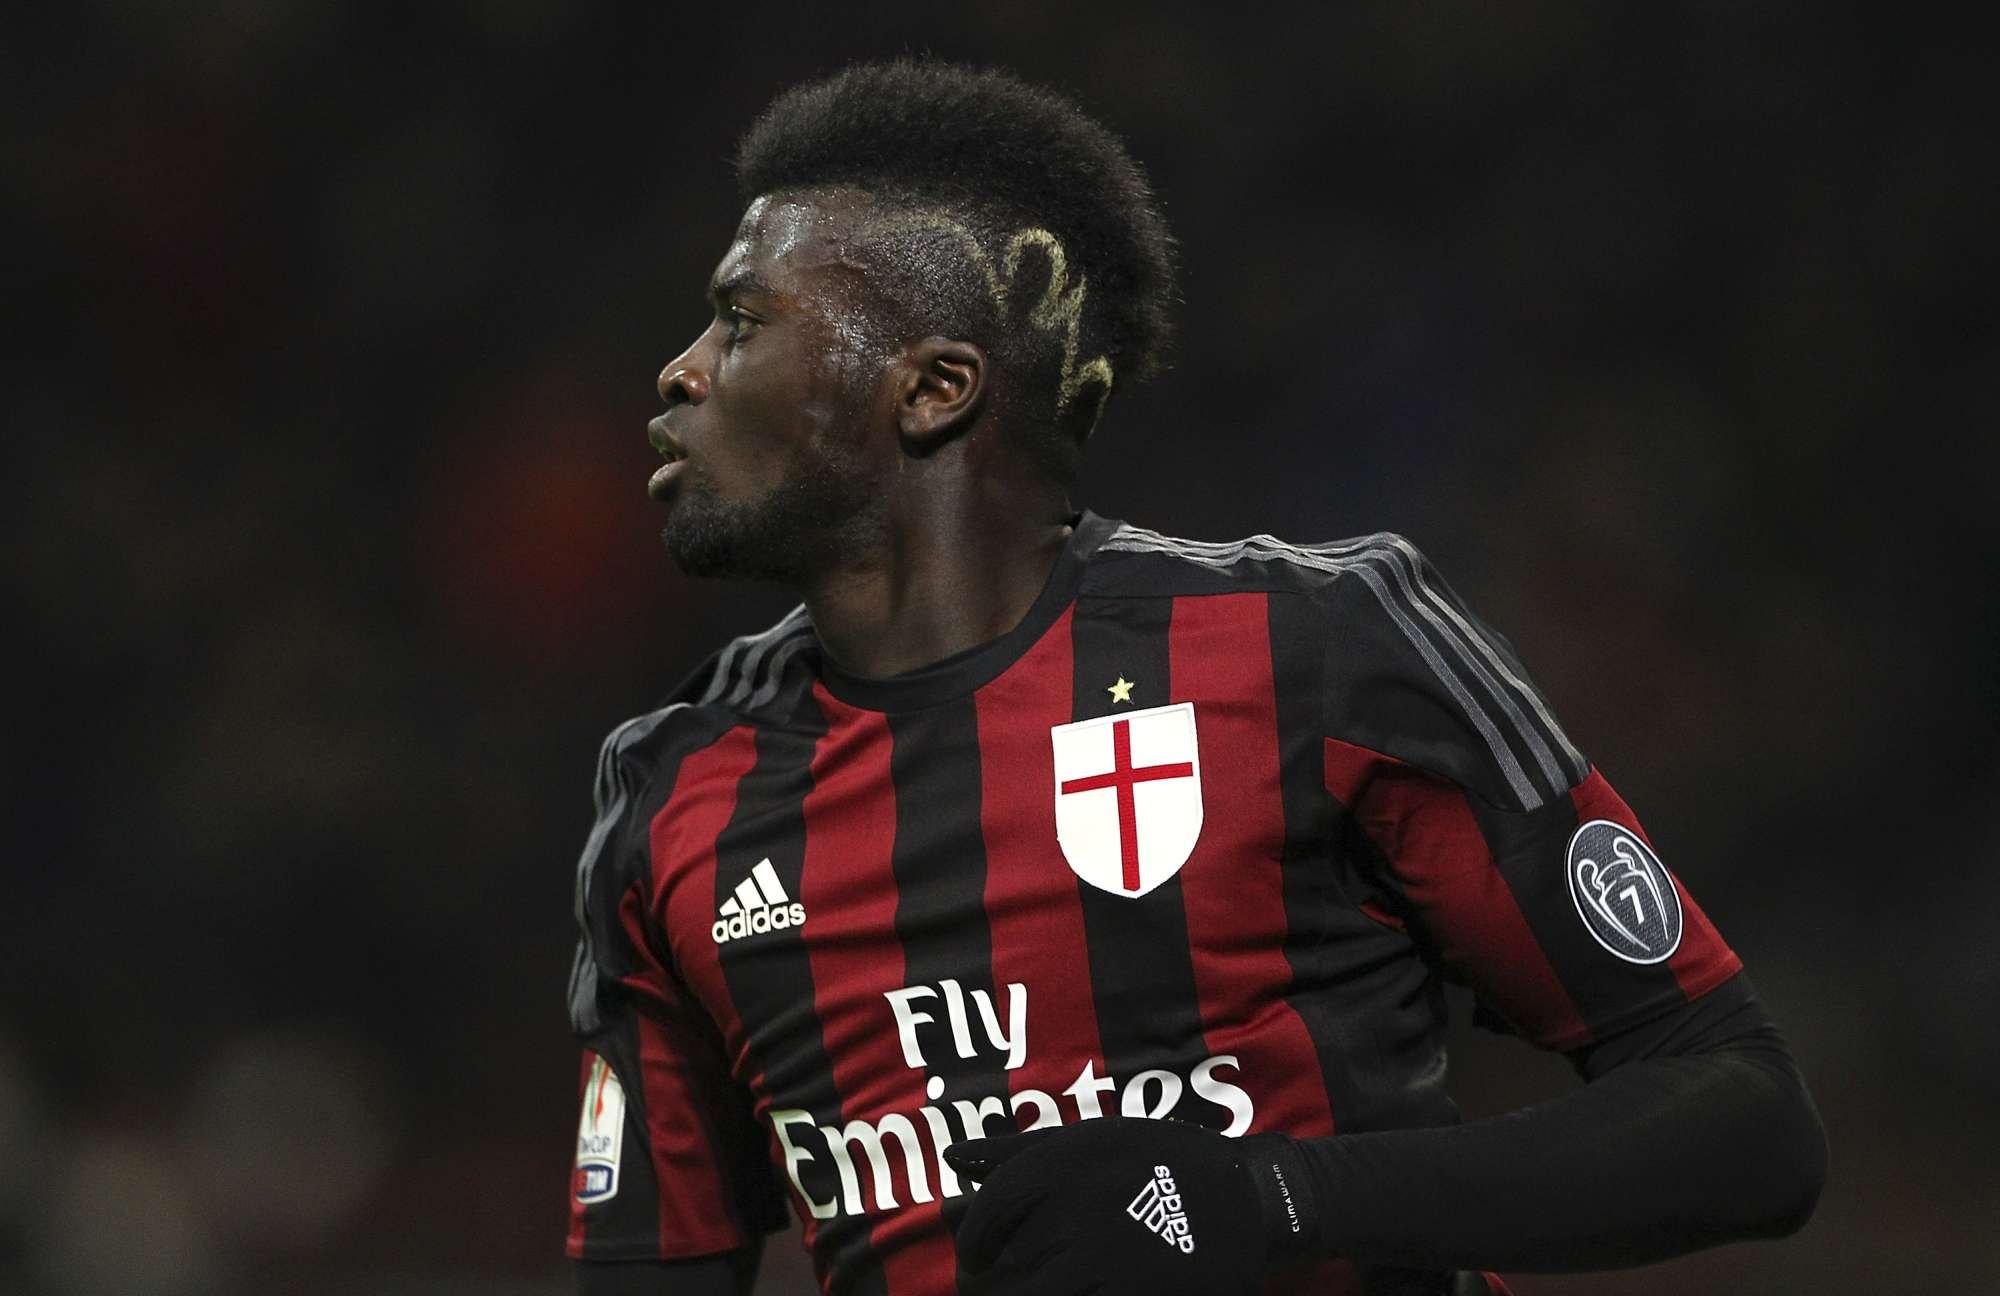 Mbaye Niang e il mistero dell'acquaplanning